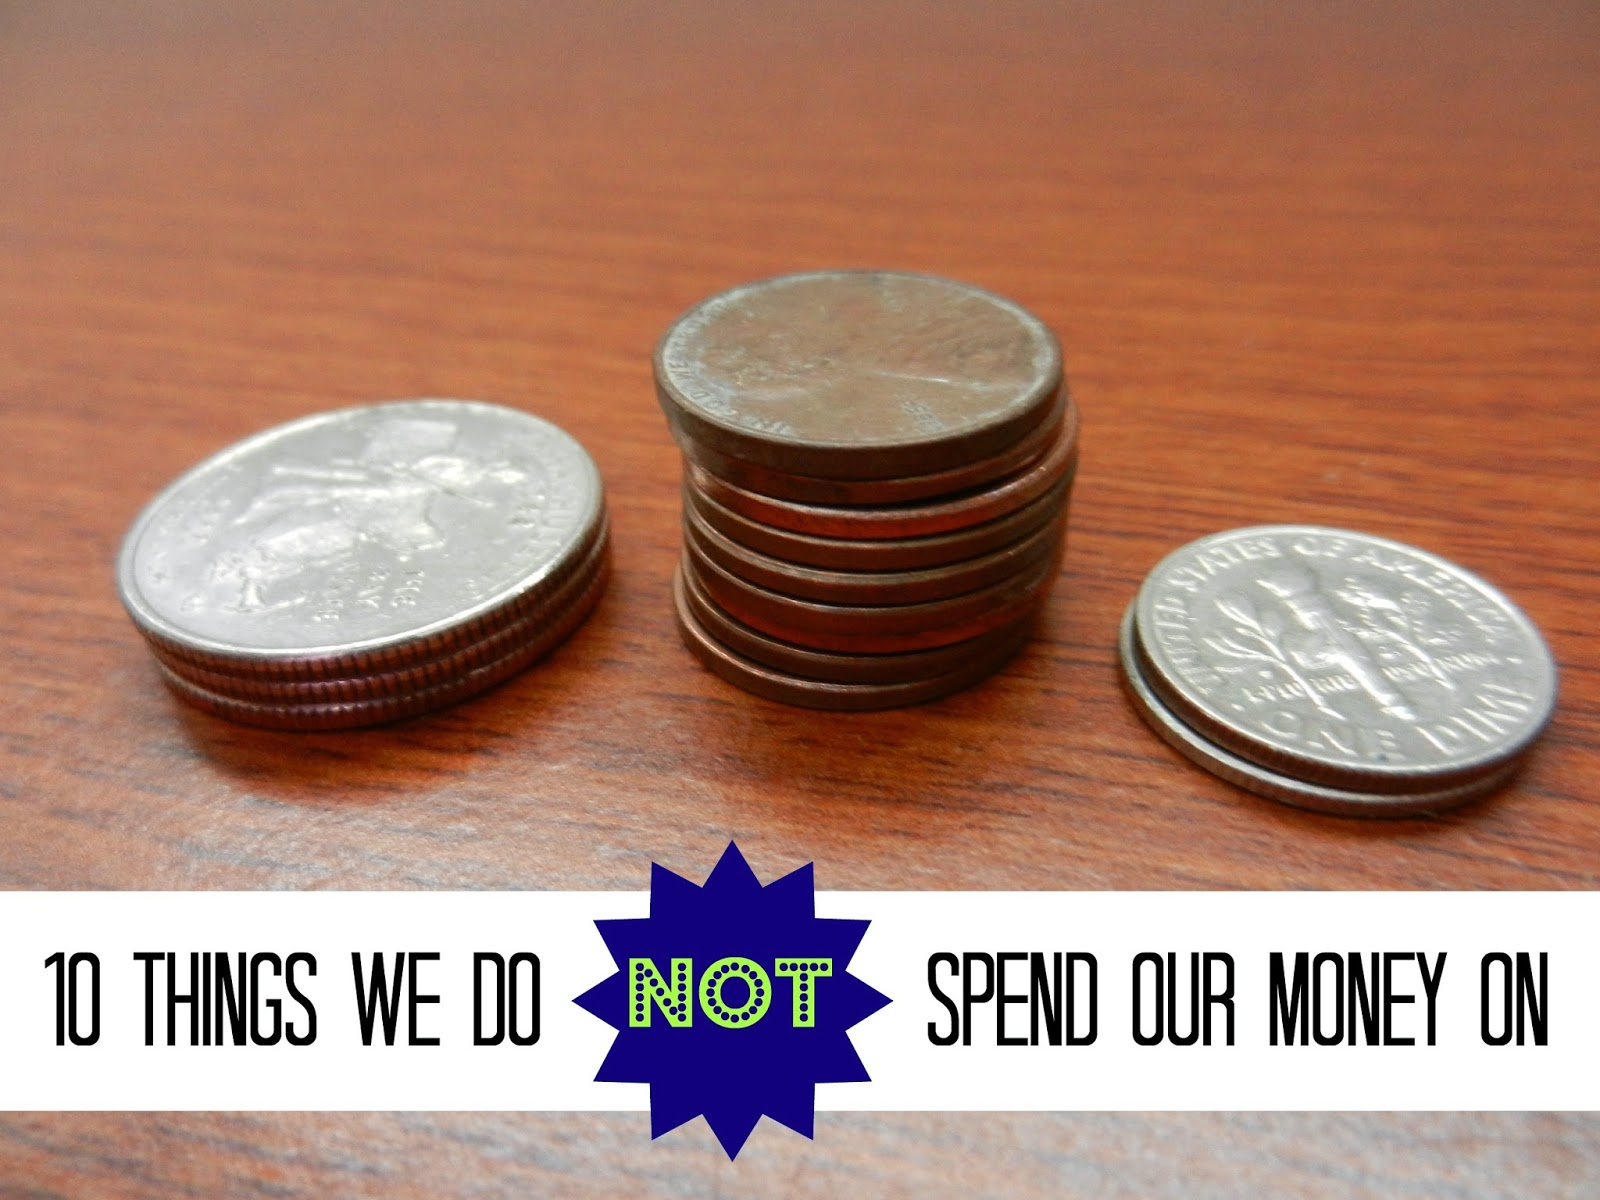 10 Things We Do Not Spend Our Money On